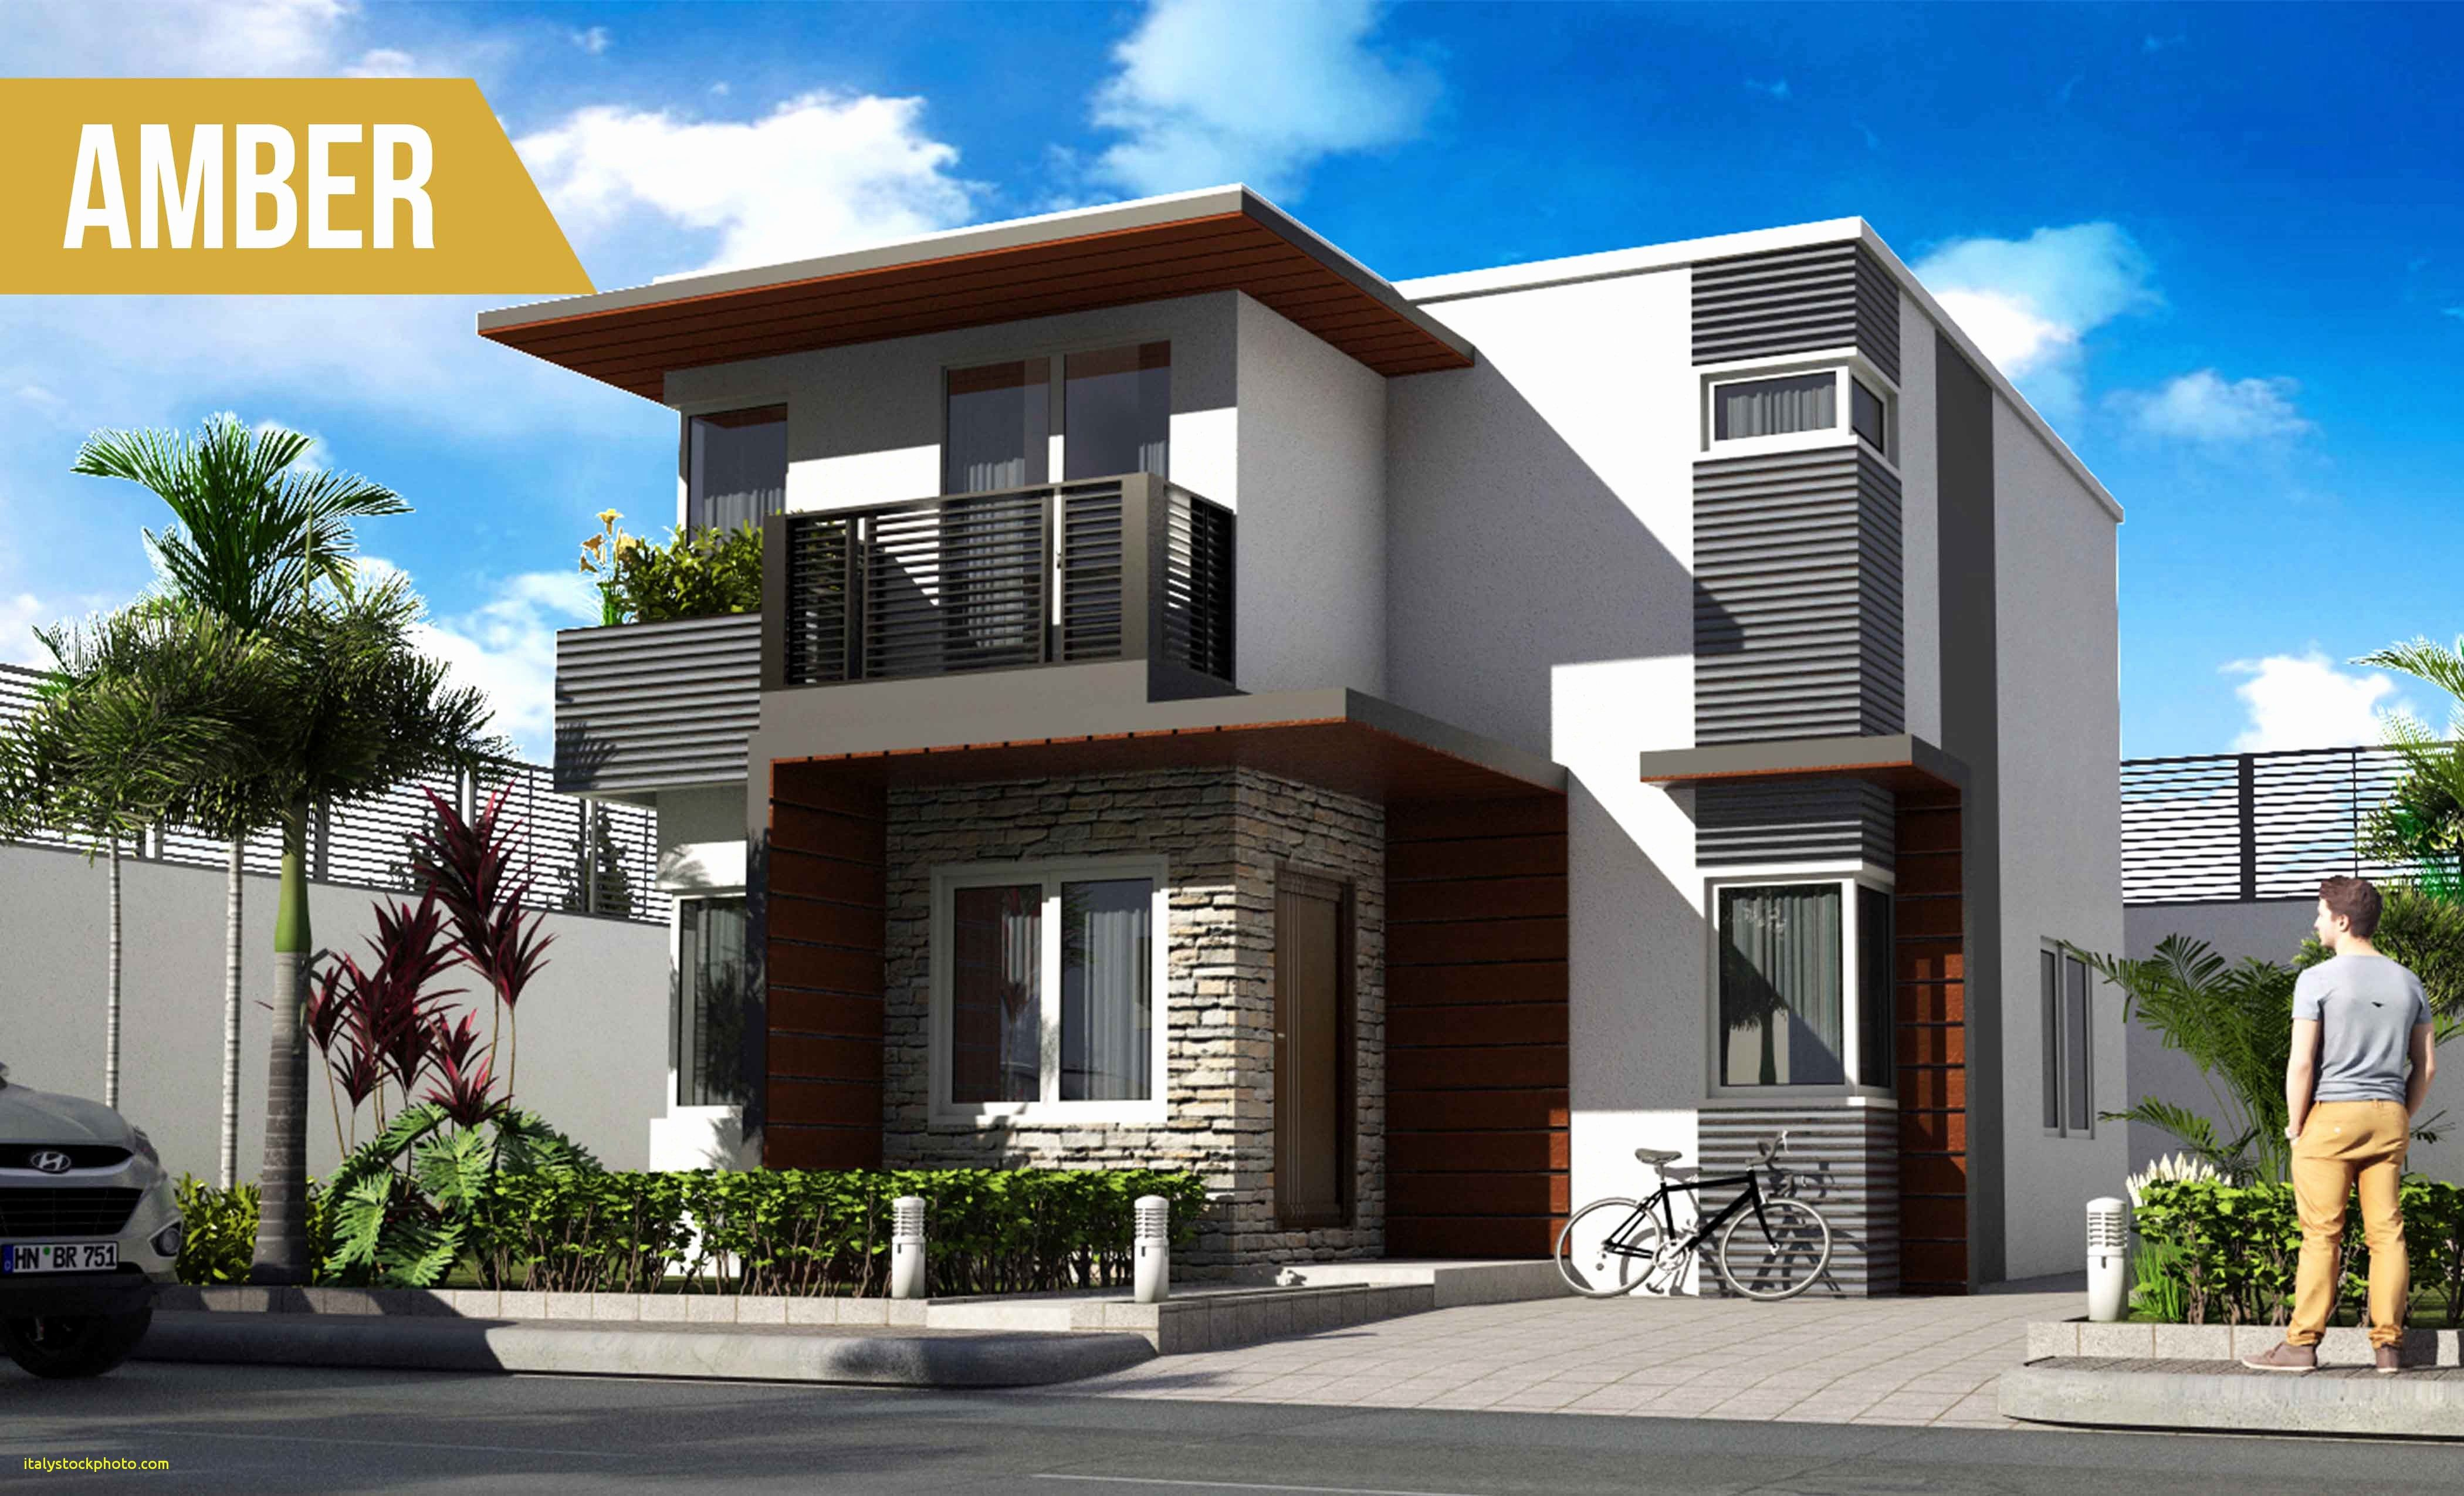 Loft Style House With 2 Bedrooms Philippines House Design Small House Design Philippines Loft House Design